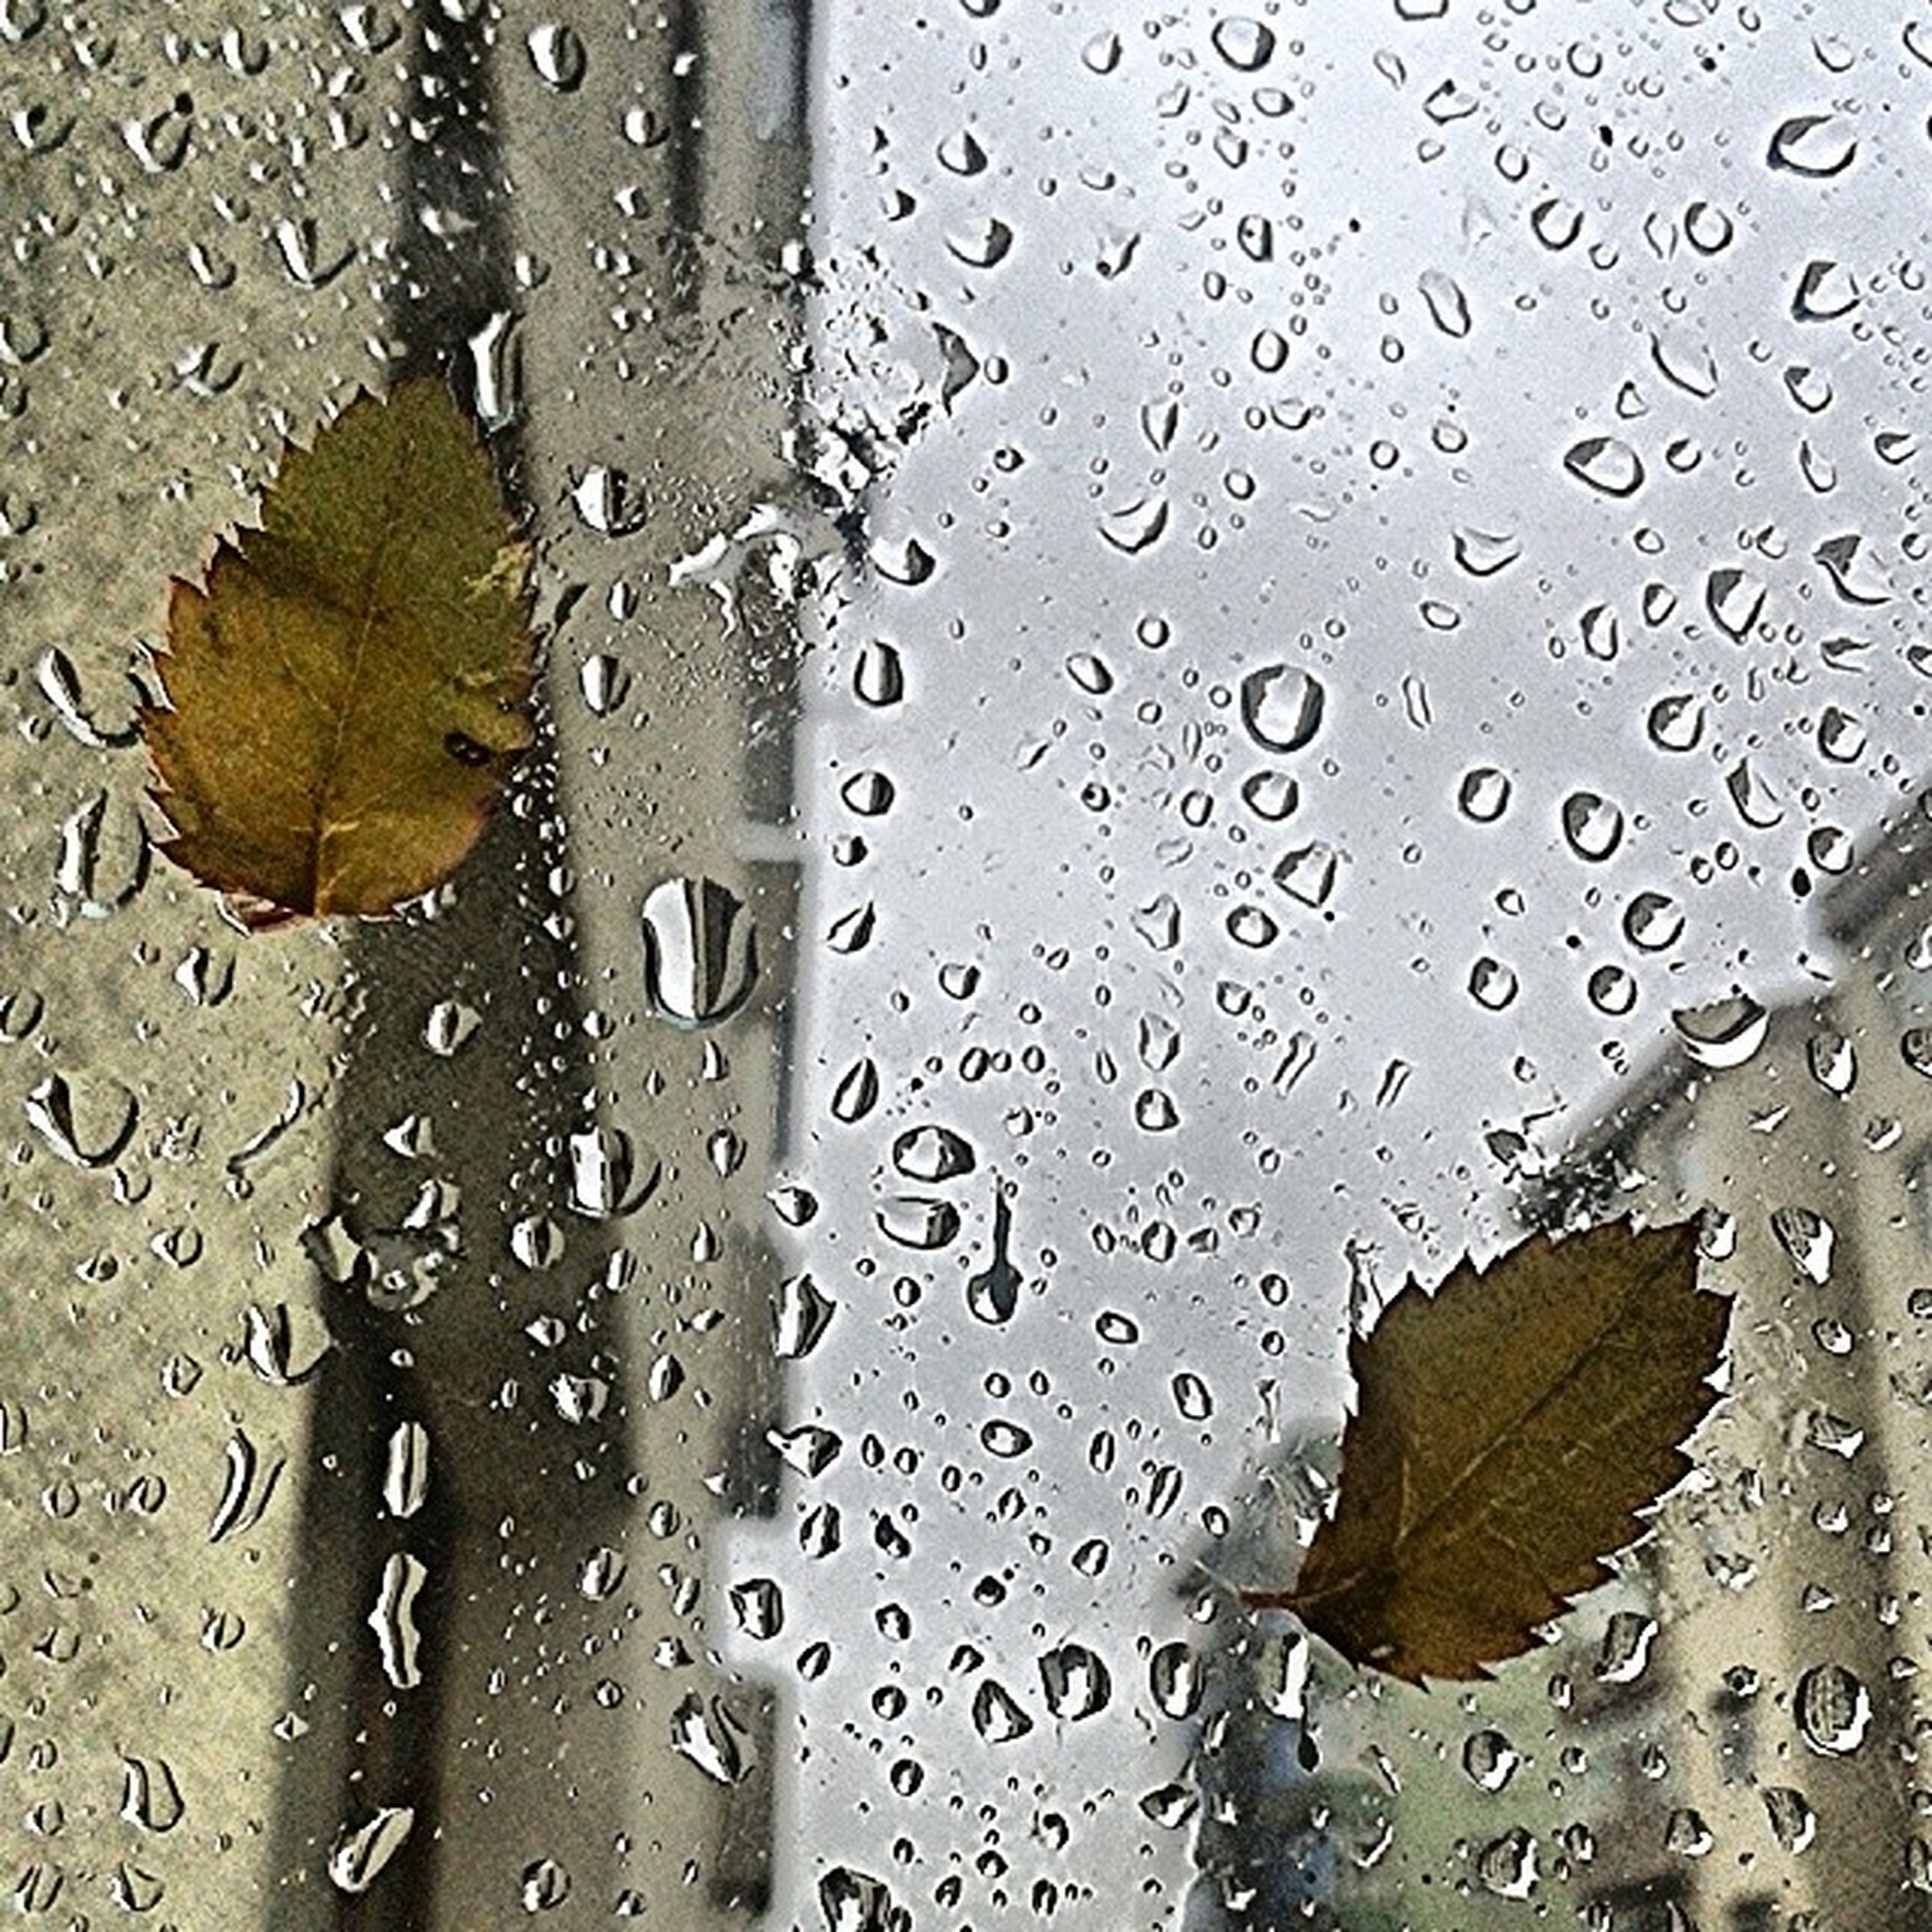 drop, wet, water, rain, raindrop, backgrounds, full frame, window, season, weather, close-up, transparent, glass - material, leaf, monsoon, droplet, indoors, focus on foreground, water drop, dew